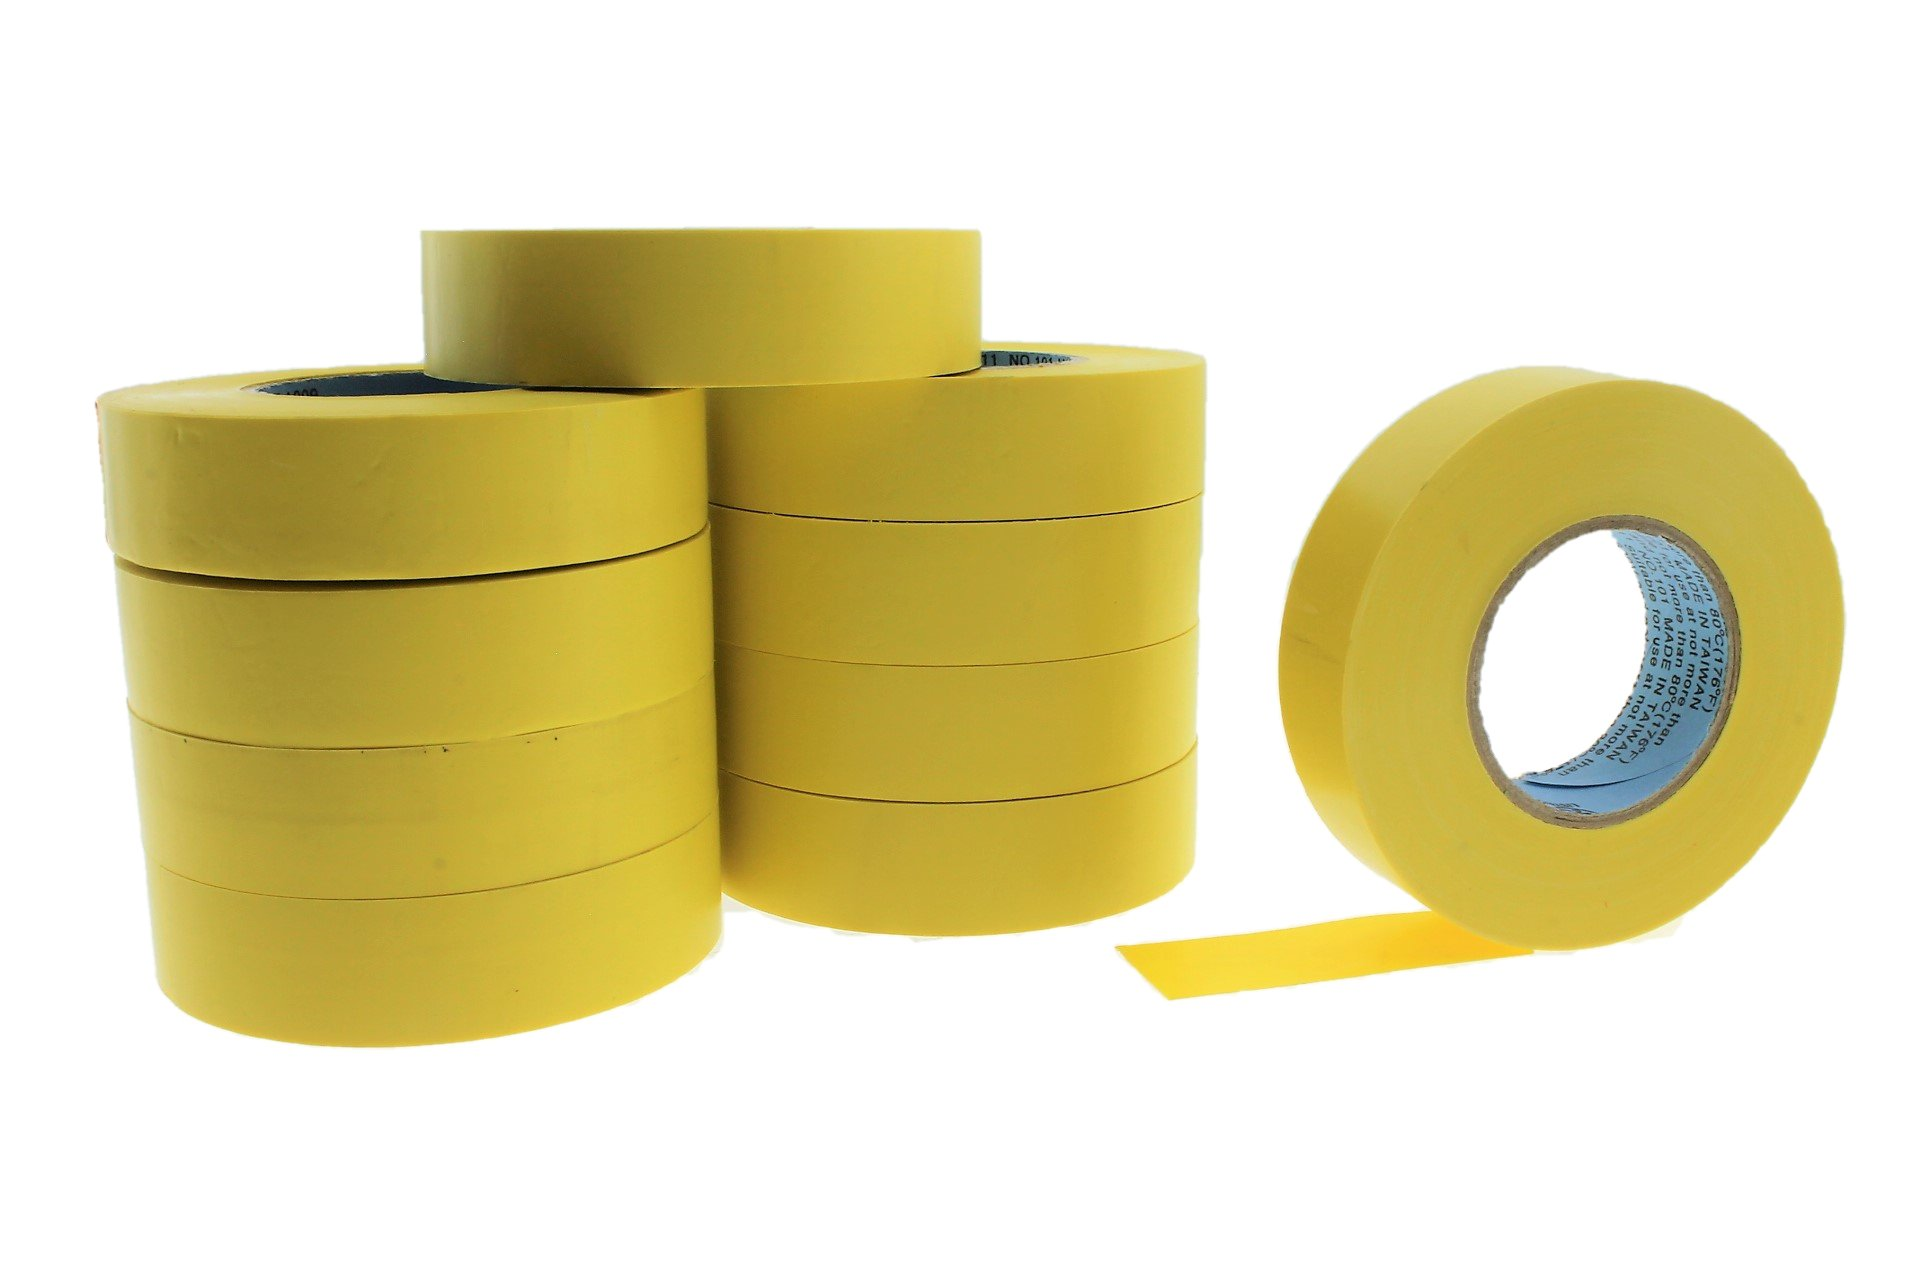 10pk 3/4'' YELLOW Electrical Tape Supreme Durable .75 Pro-Grade Wire harness PVC Vinyl Marking Labeling Coding Warning Safety Flame Retardant 60' 7 mil